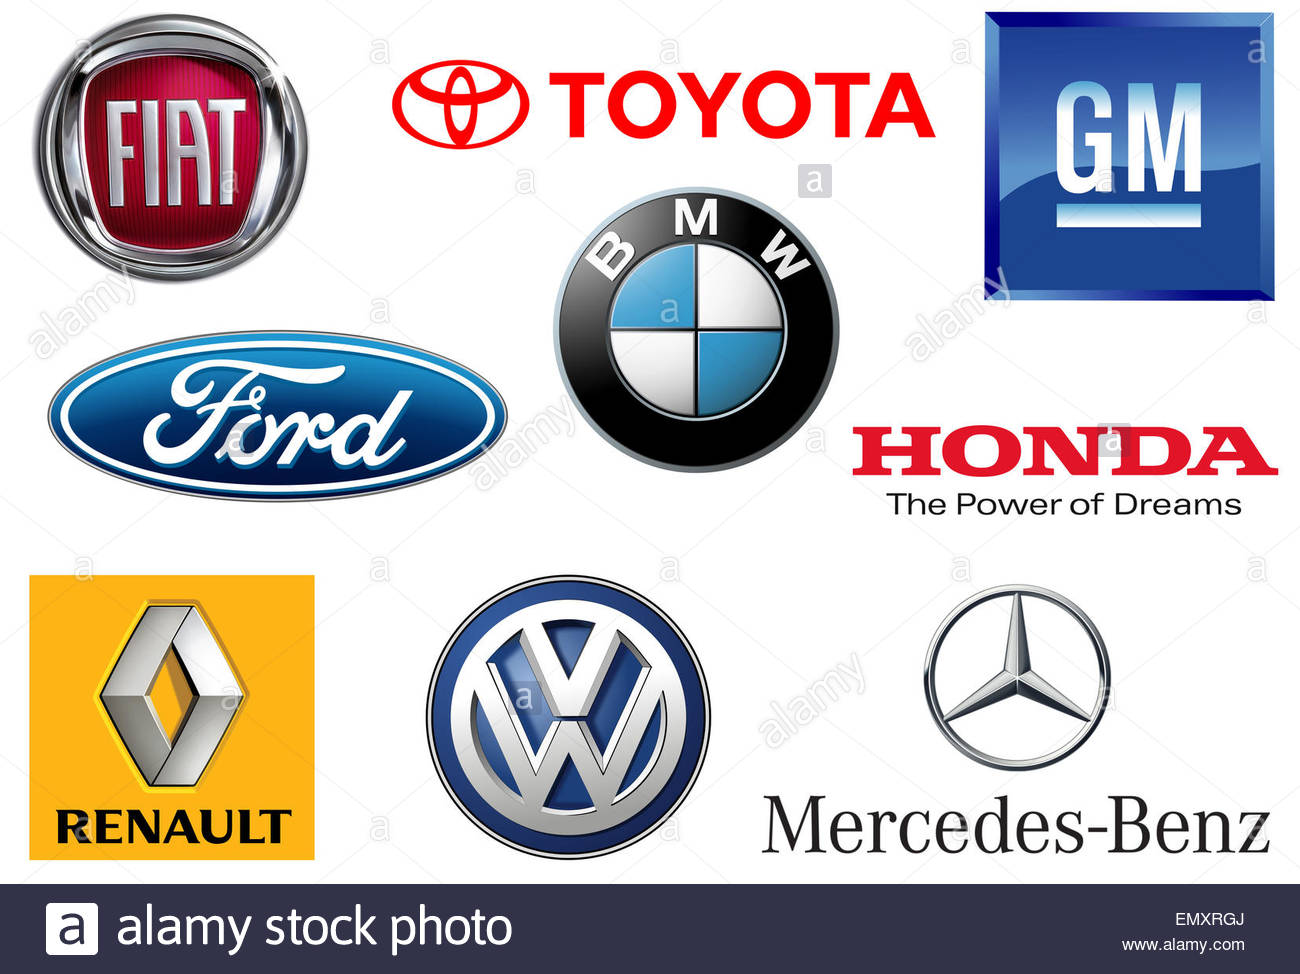 Mercedes General Motors >> Toyota Volkswagen Gm General Motors Ford Bmw Mercedes Daimler